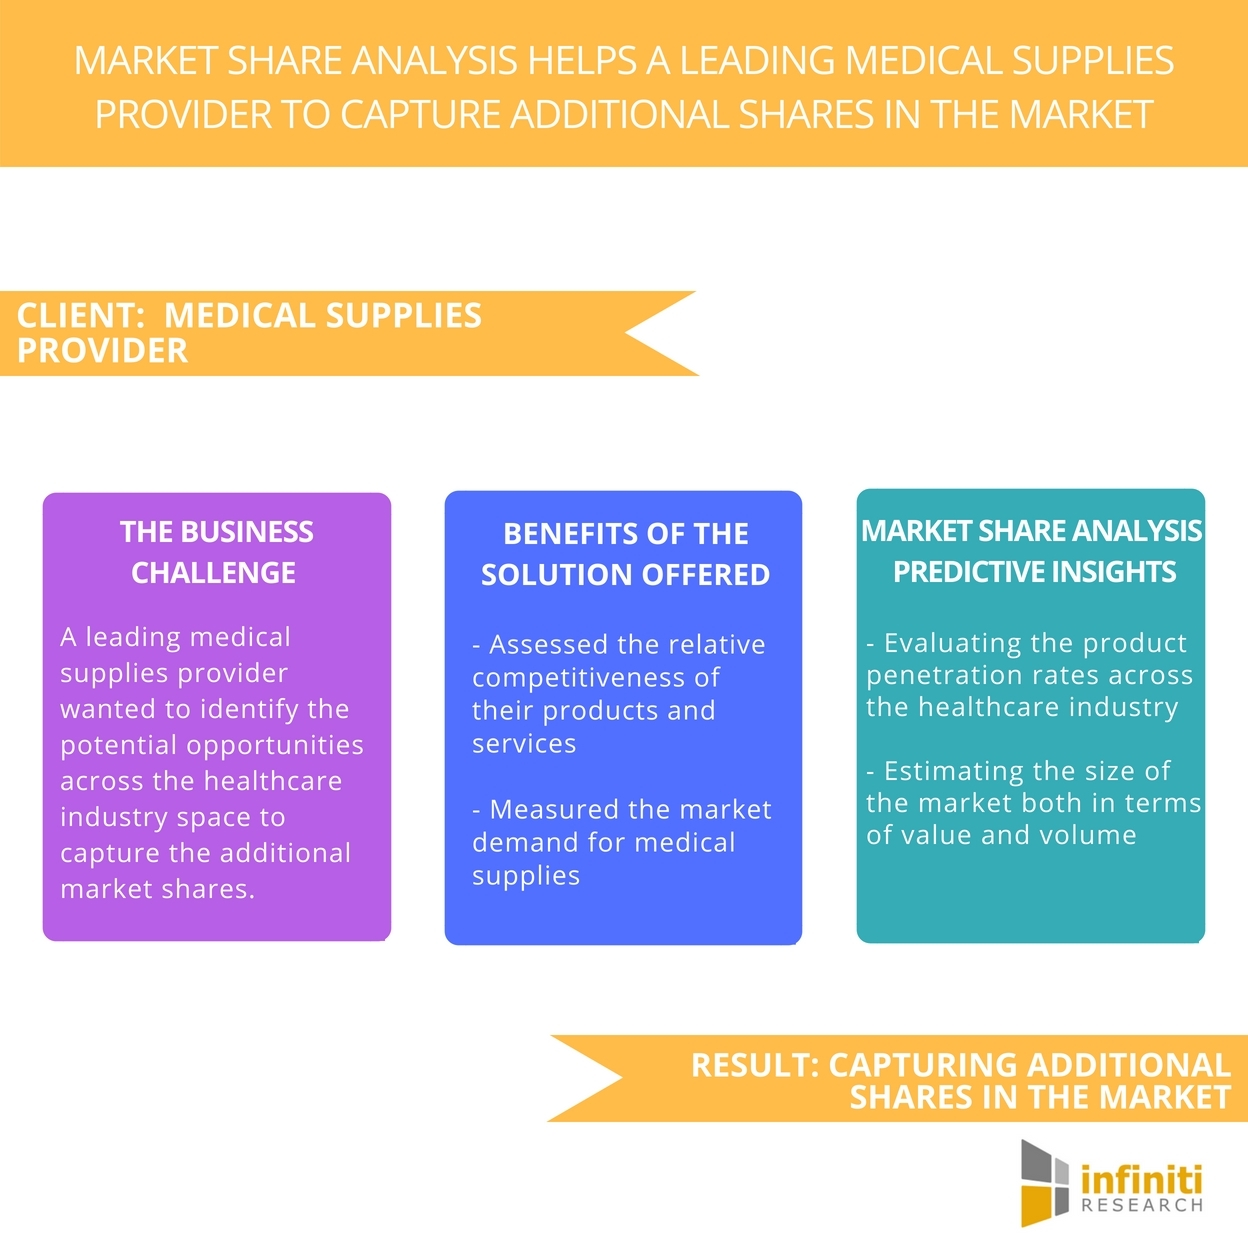 A Medical Supplies Provider Captured Additional Share in the